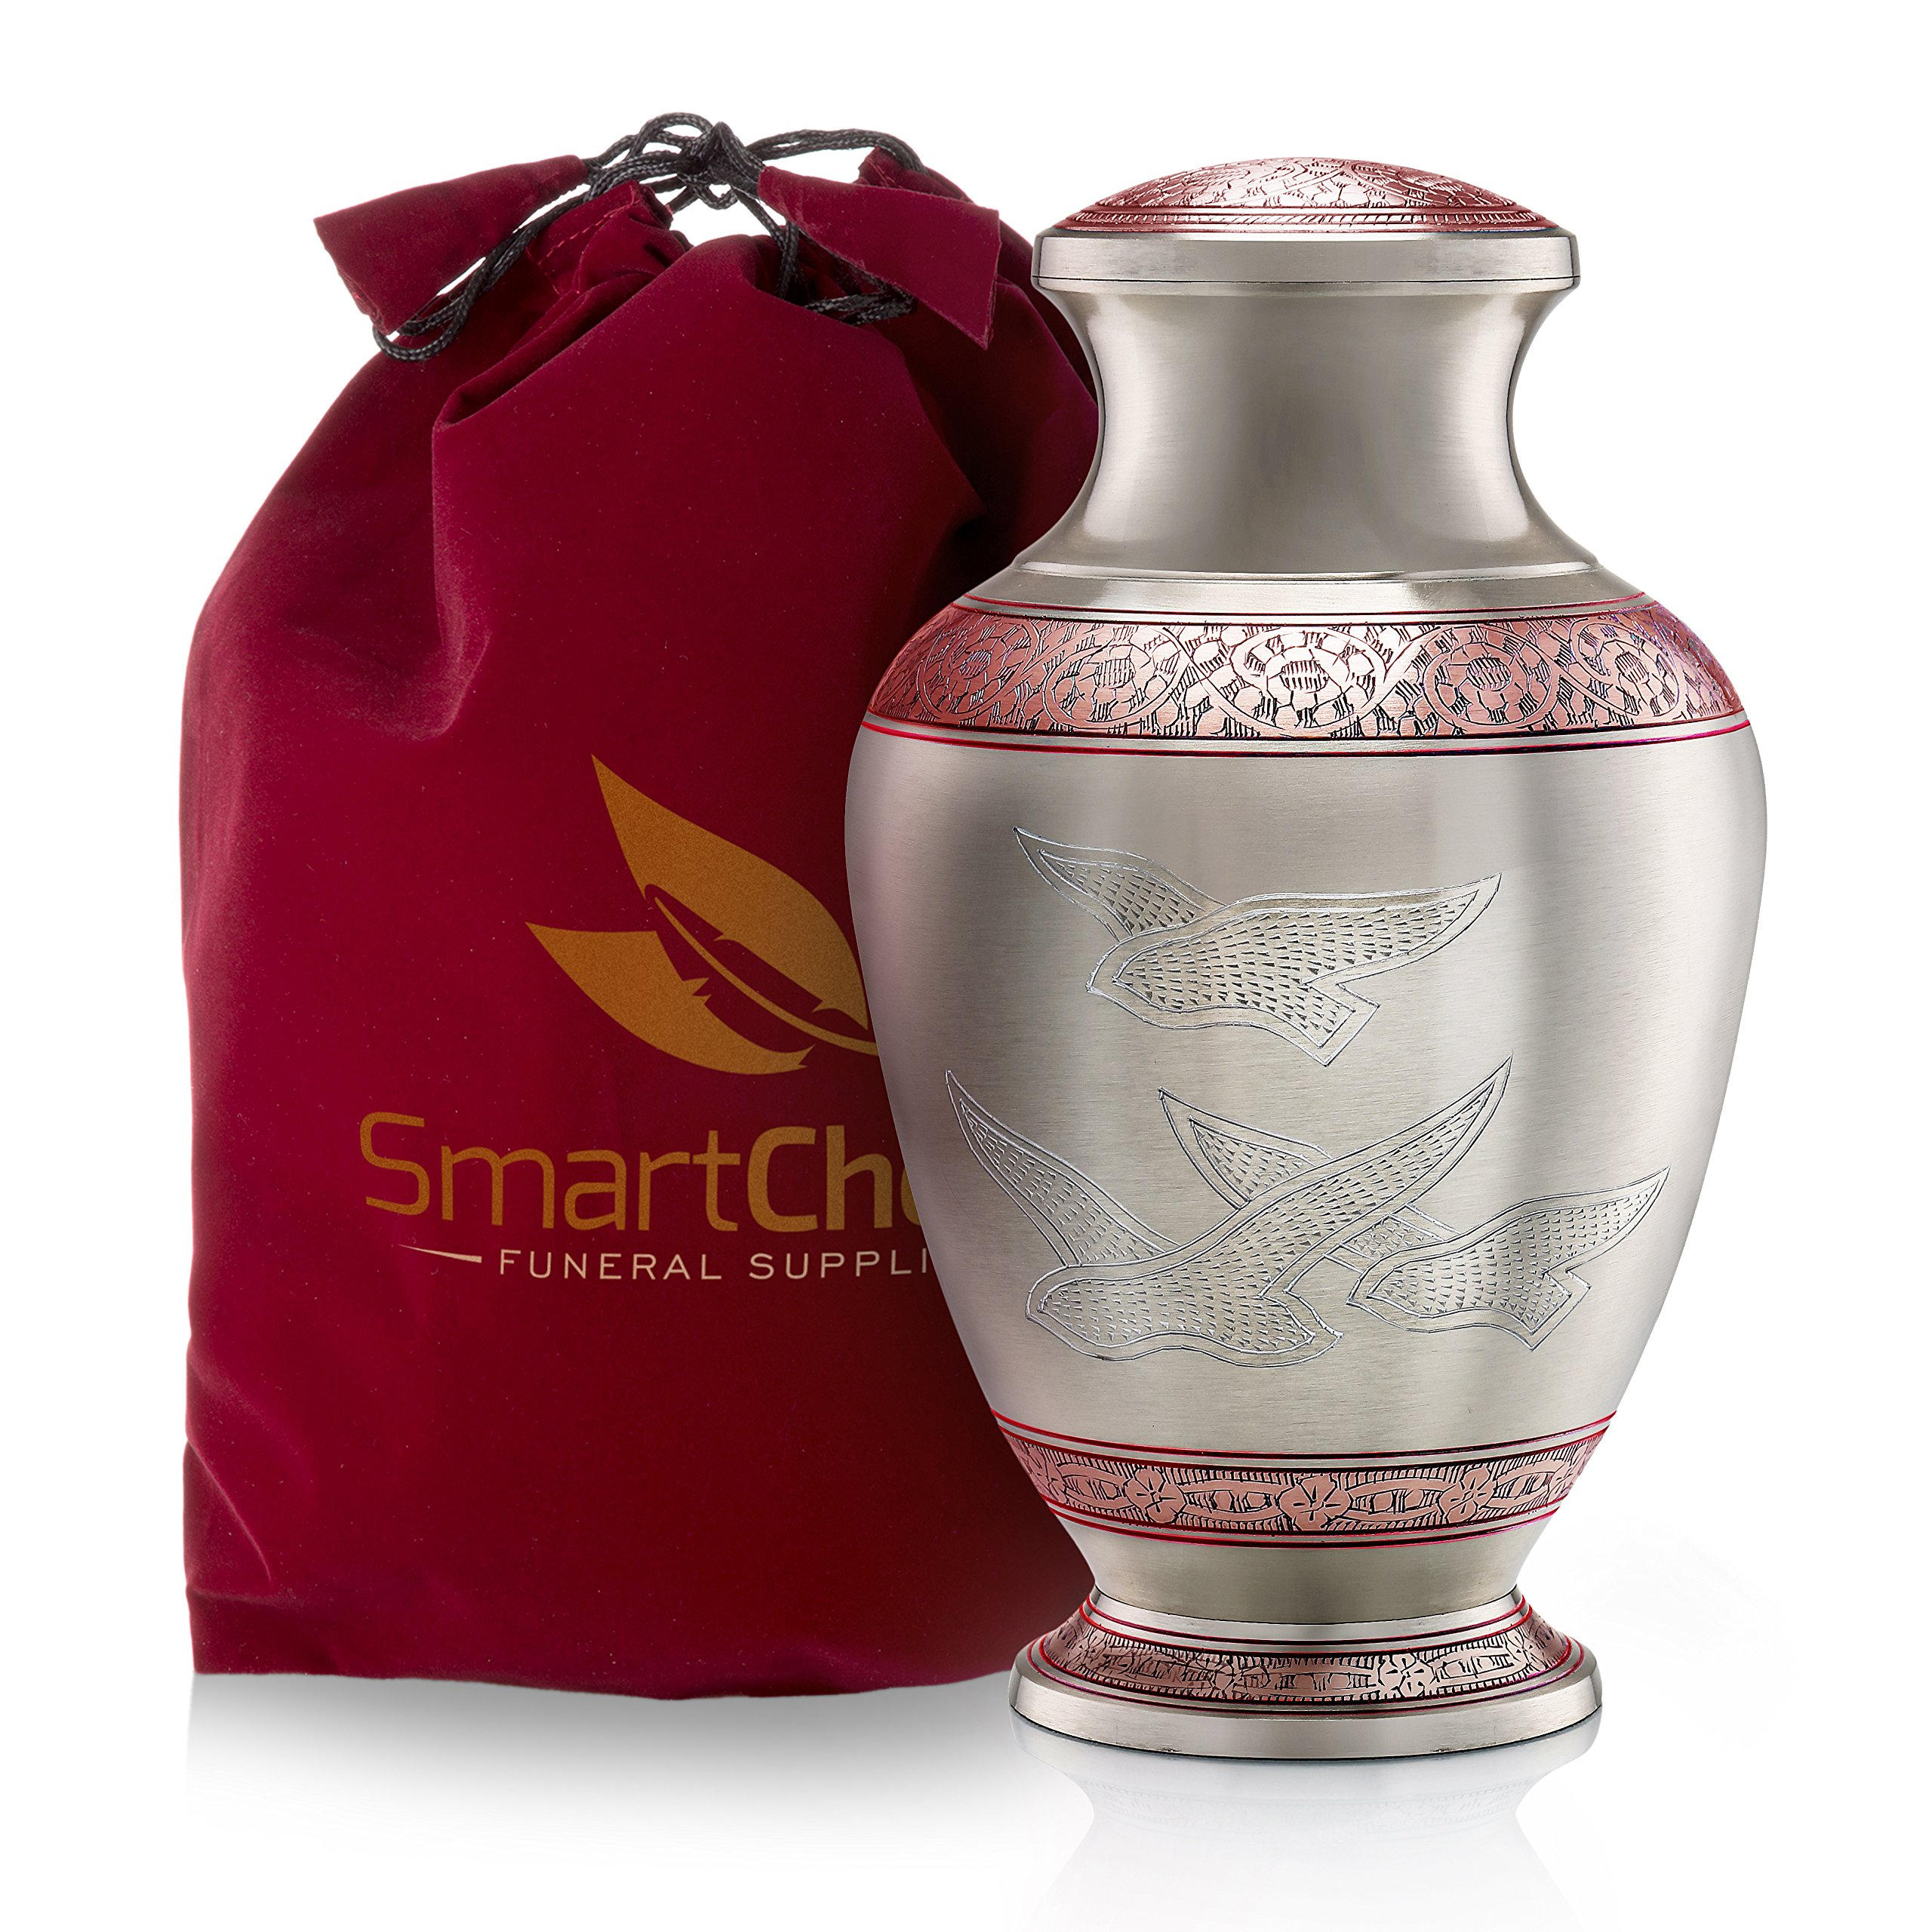 SmartChoice Wings of Freedom Brass Cremation Urn for Human Ashes - Affordable Funeral Urn Adult Urn for Ashes Handcrafted Urn (Adult) (Adult - Red)